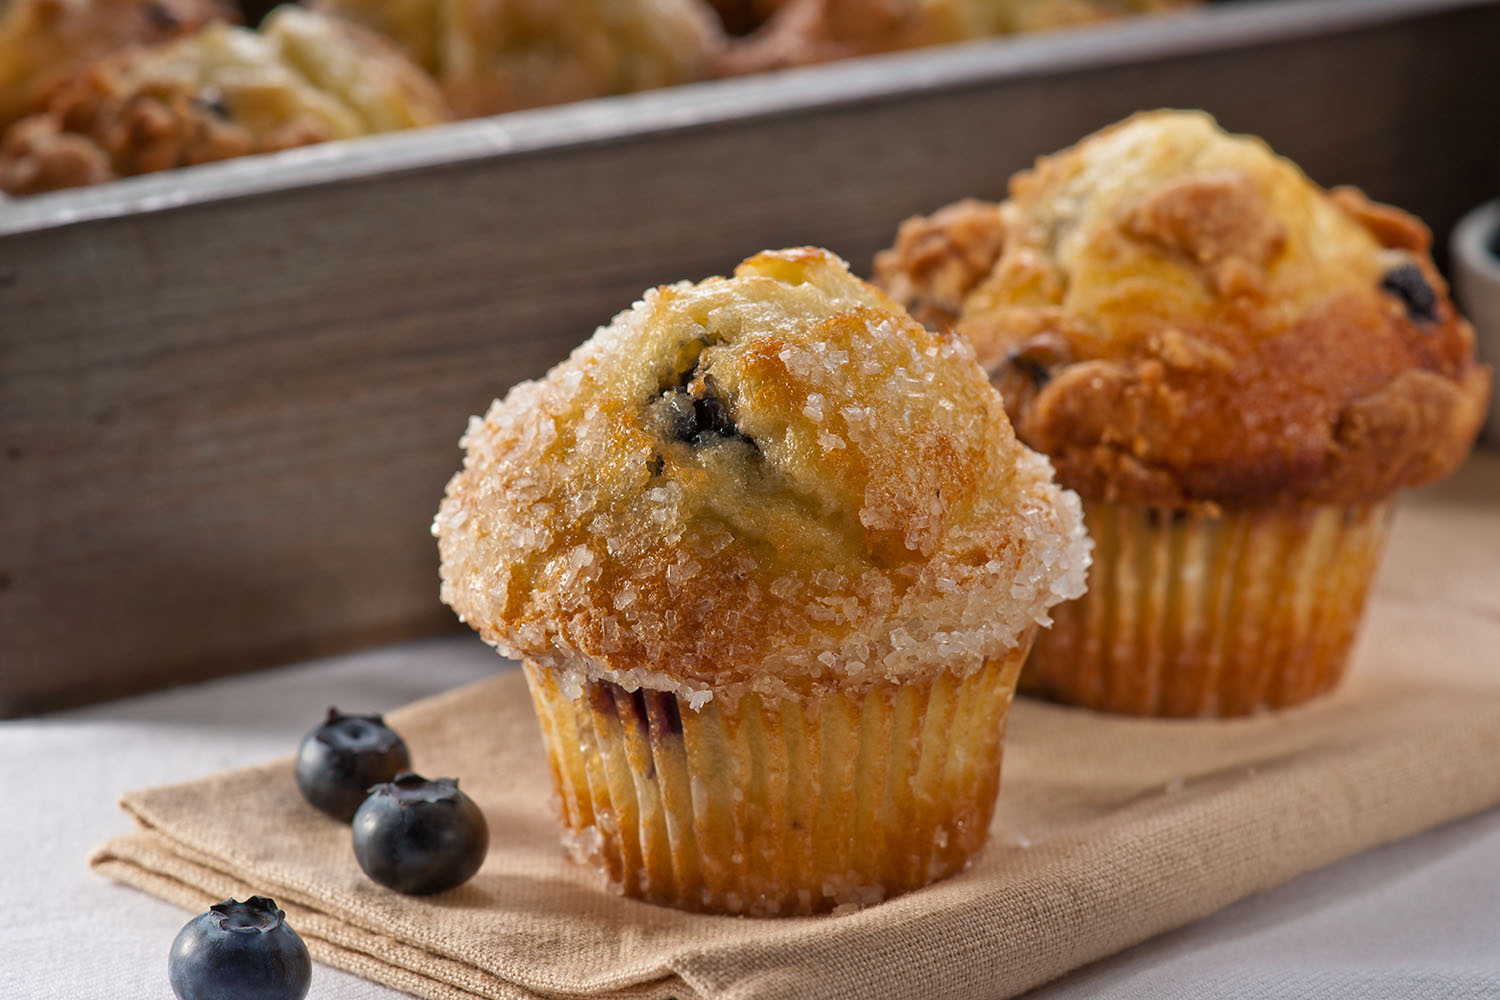 Blueberry Experience - Experience the sweet taste of fresh blueberries crammed into every bite of this old-fashioned favorite. This yummy treat will always keep your patrons returning for more.